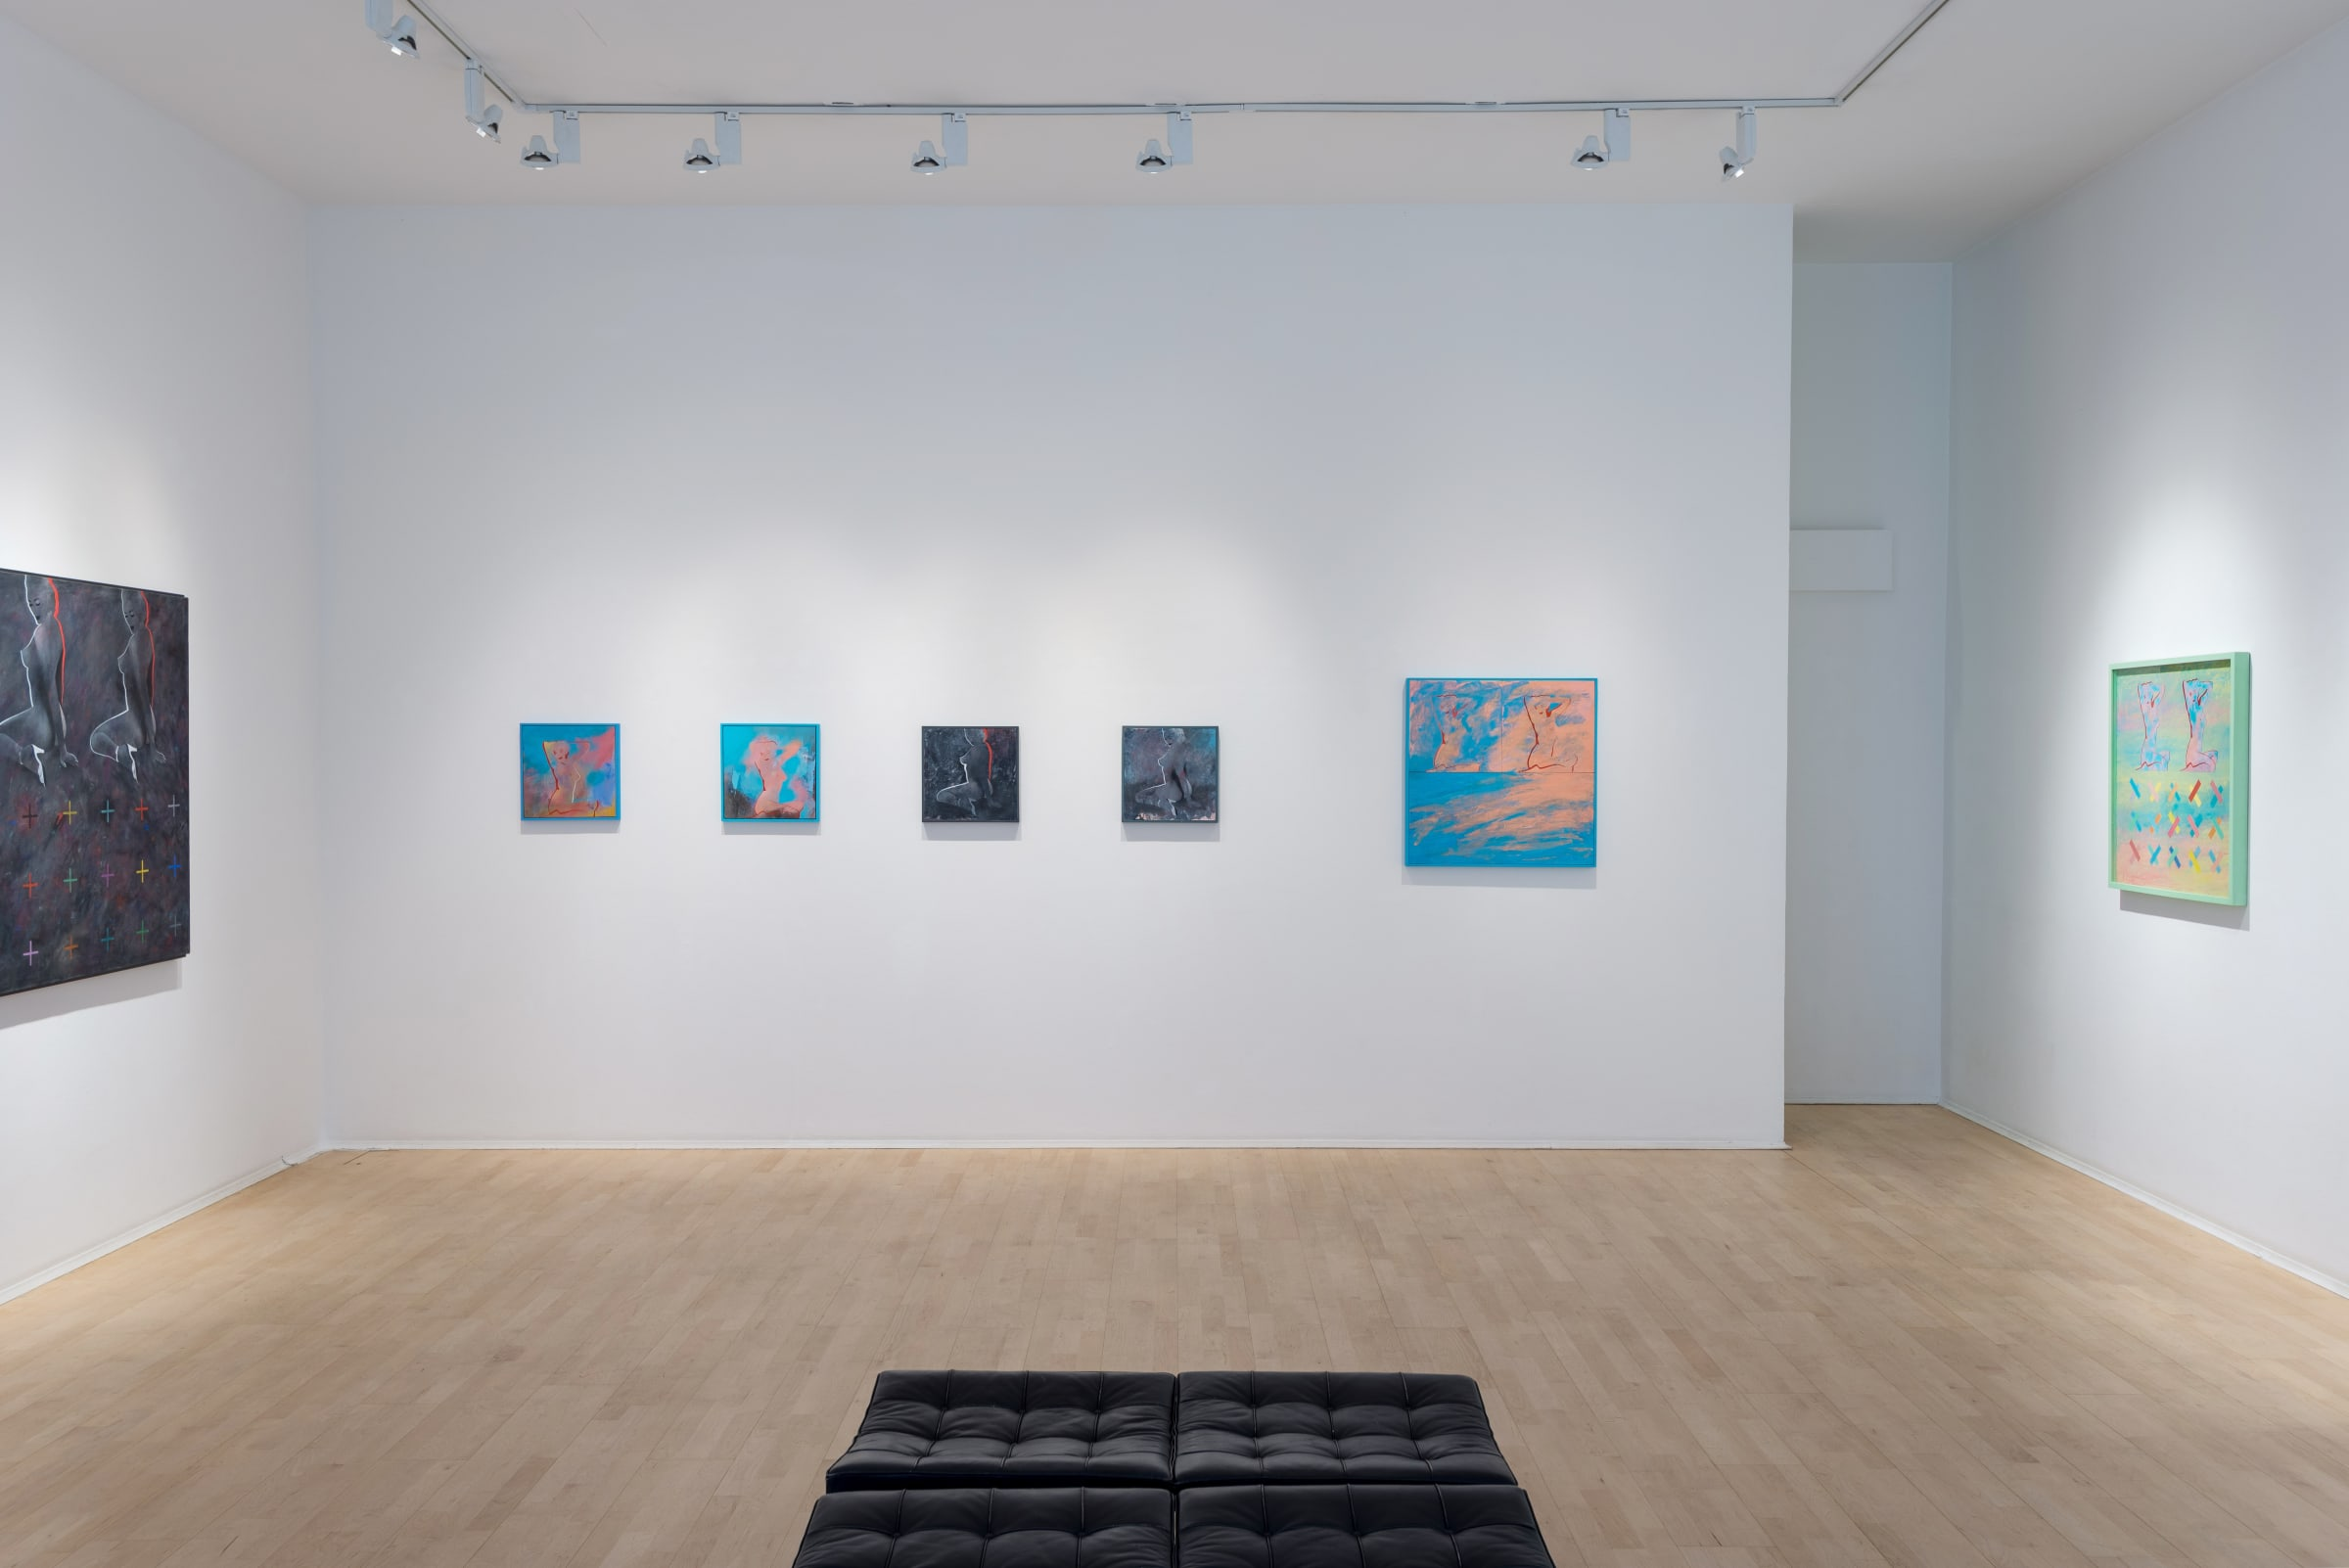 """<span class=""""link fancybox-details-link""""><a href=""""/exhibitions/318/works/image_standalone1620/"""">View Detail Page</a></span><p><strong>ANTONY DONALDSON</strong>   OF MEMORY OF OBLIVION   09 SEP - 09 OCT 2015   Installation view</p>"""